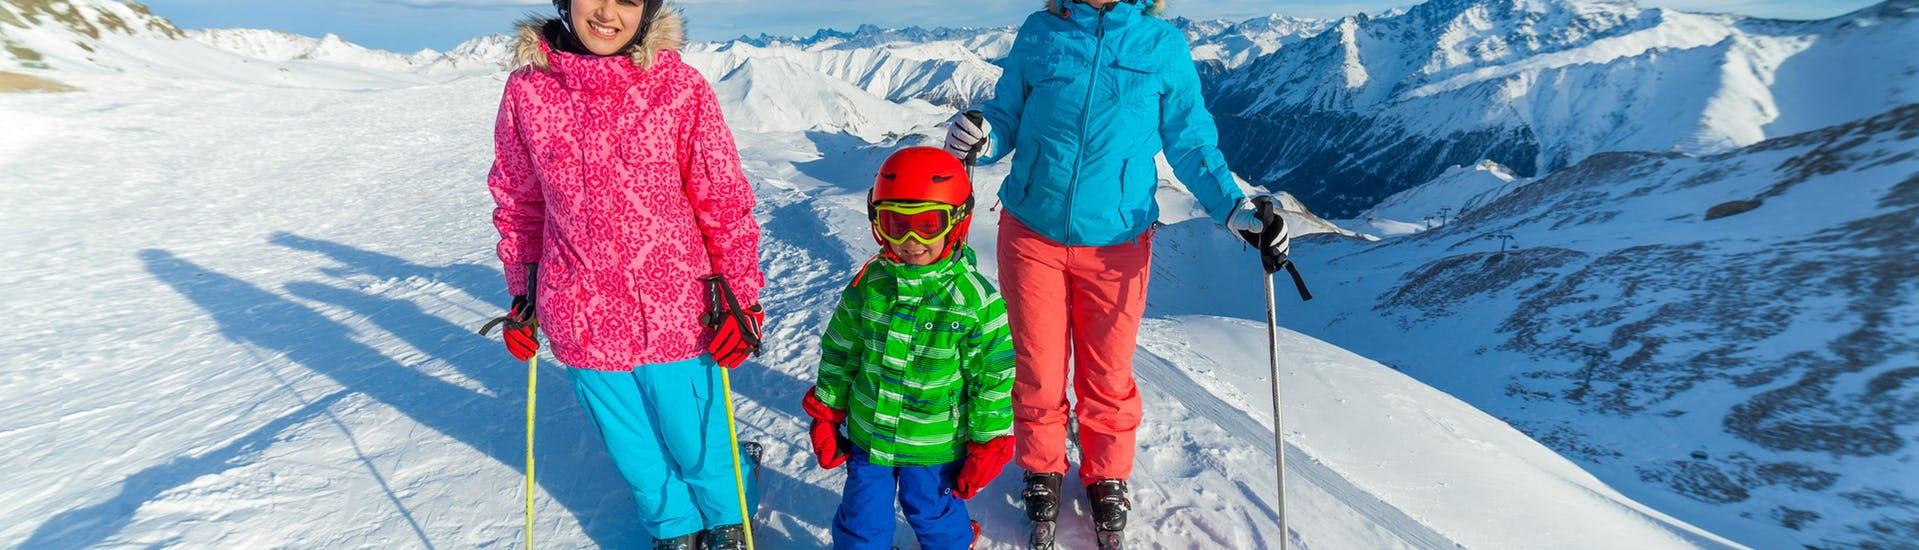 Ski Instructor Private for Families - All Levels